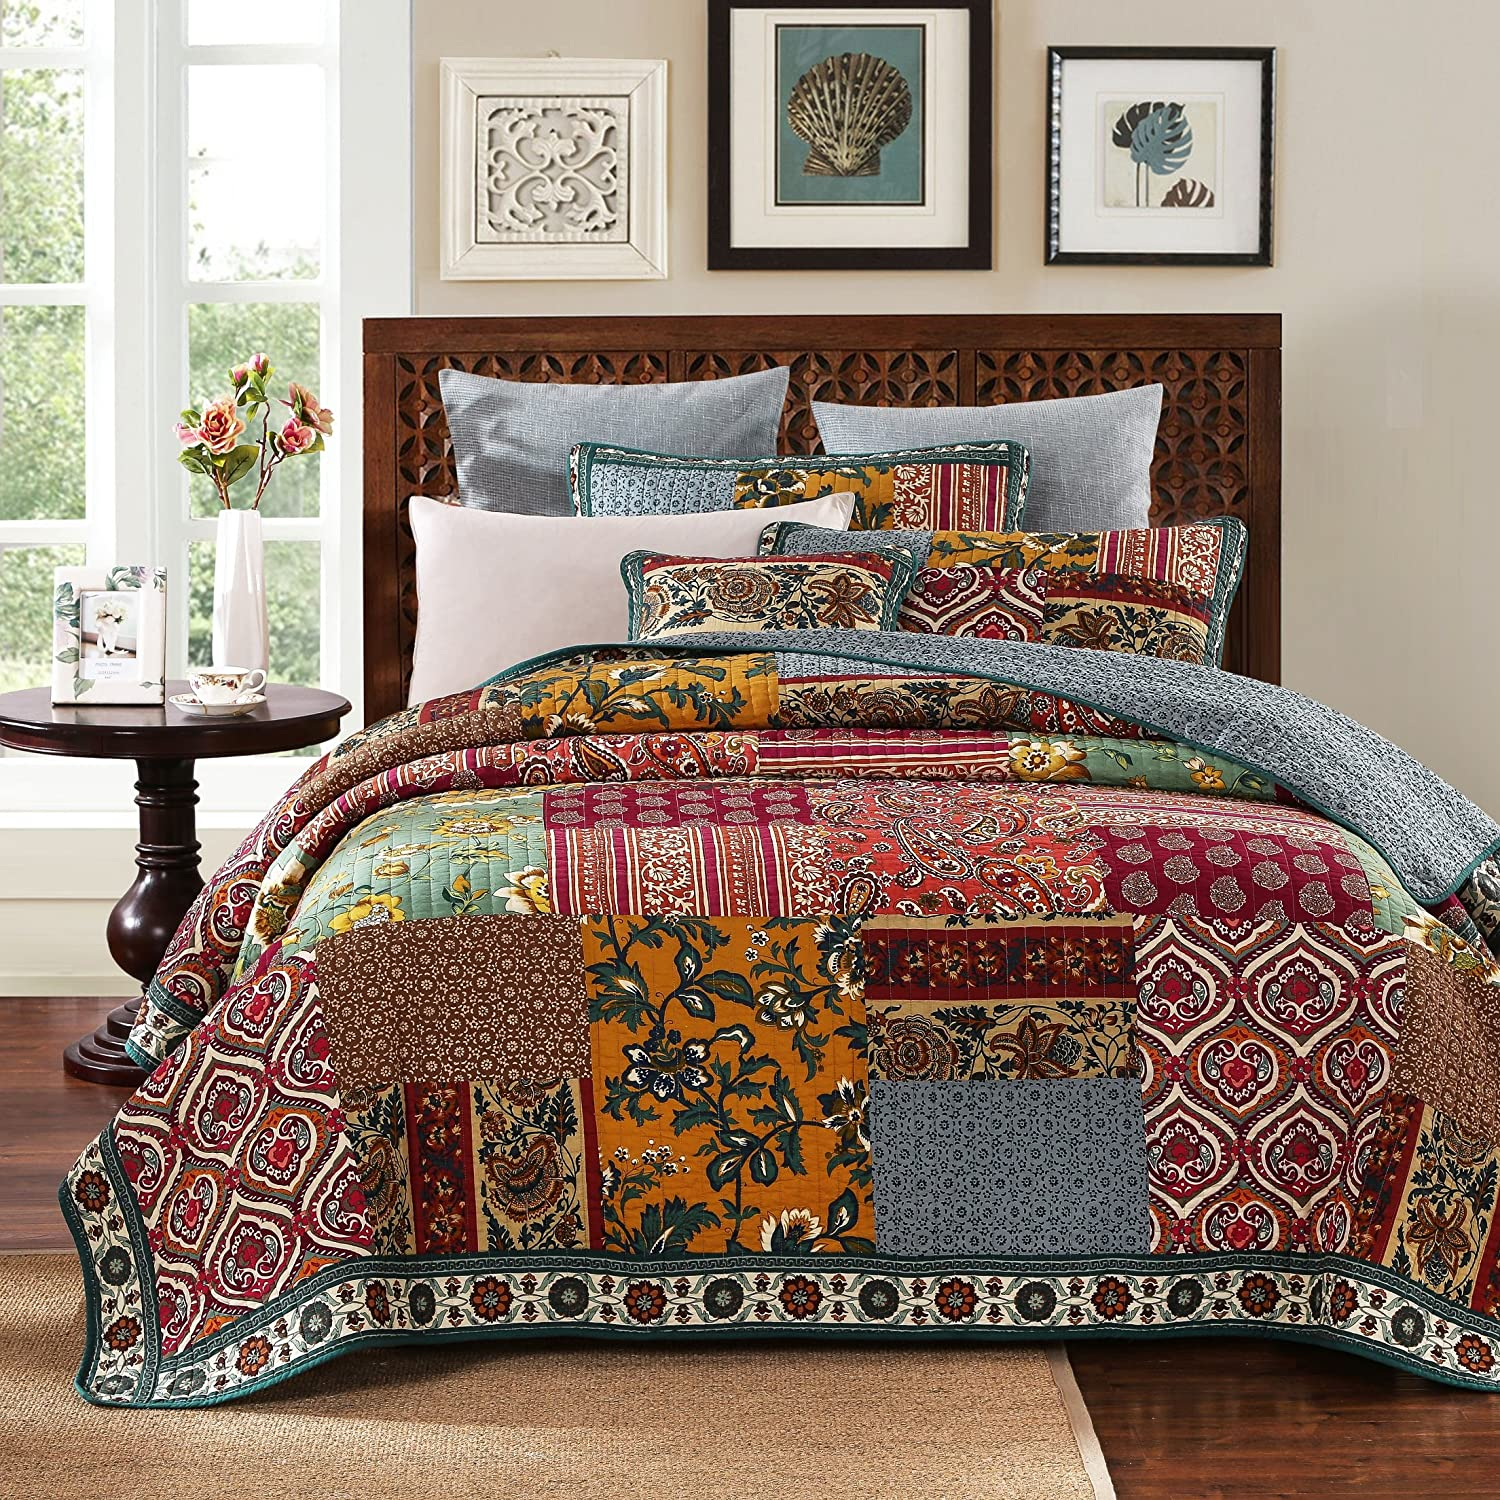 Navy Bedding And Navy Quilts Ease Bedding With Style